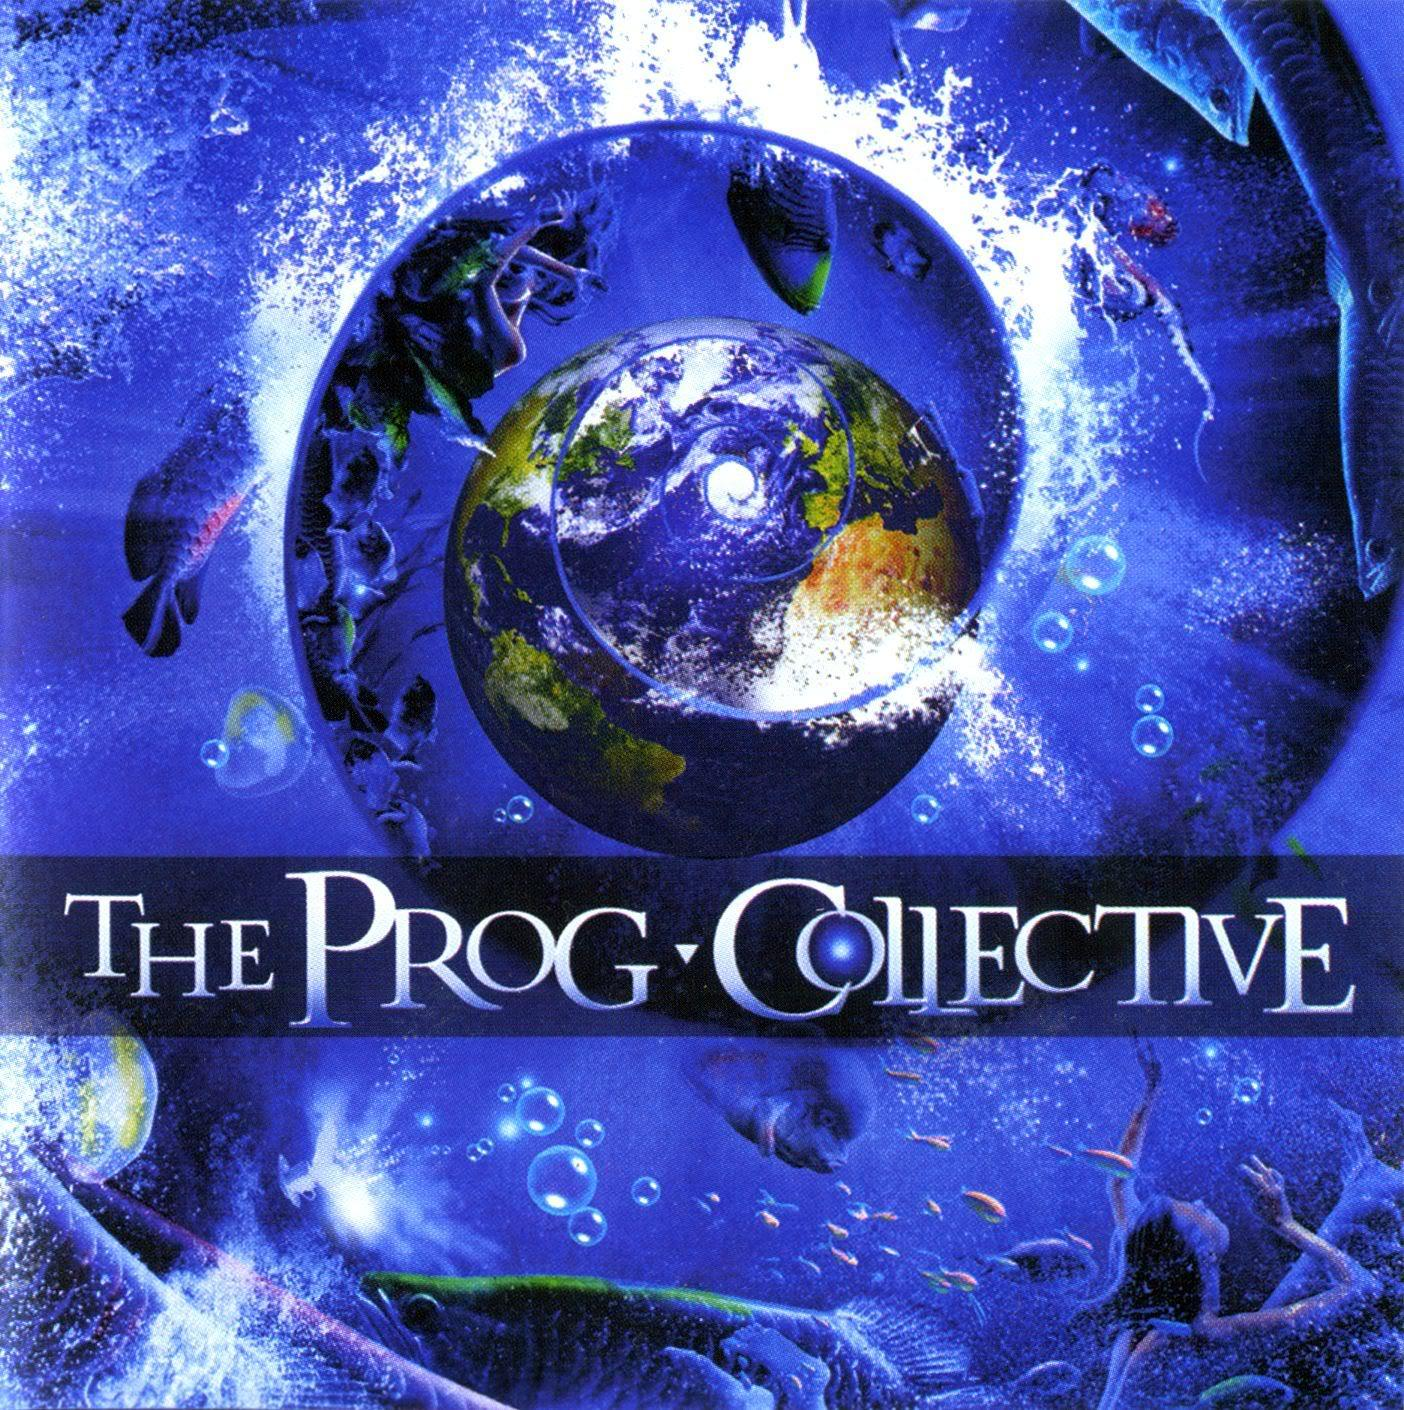 The Prog Collective - The Prog Collective [MULTI]